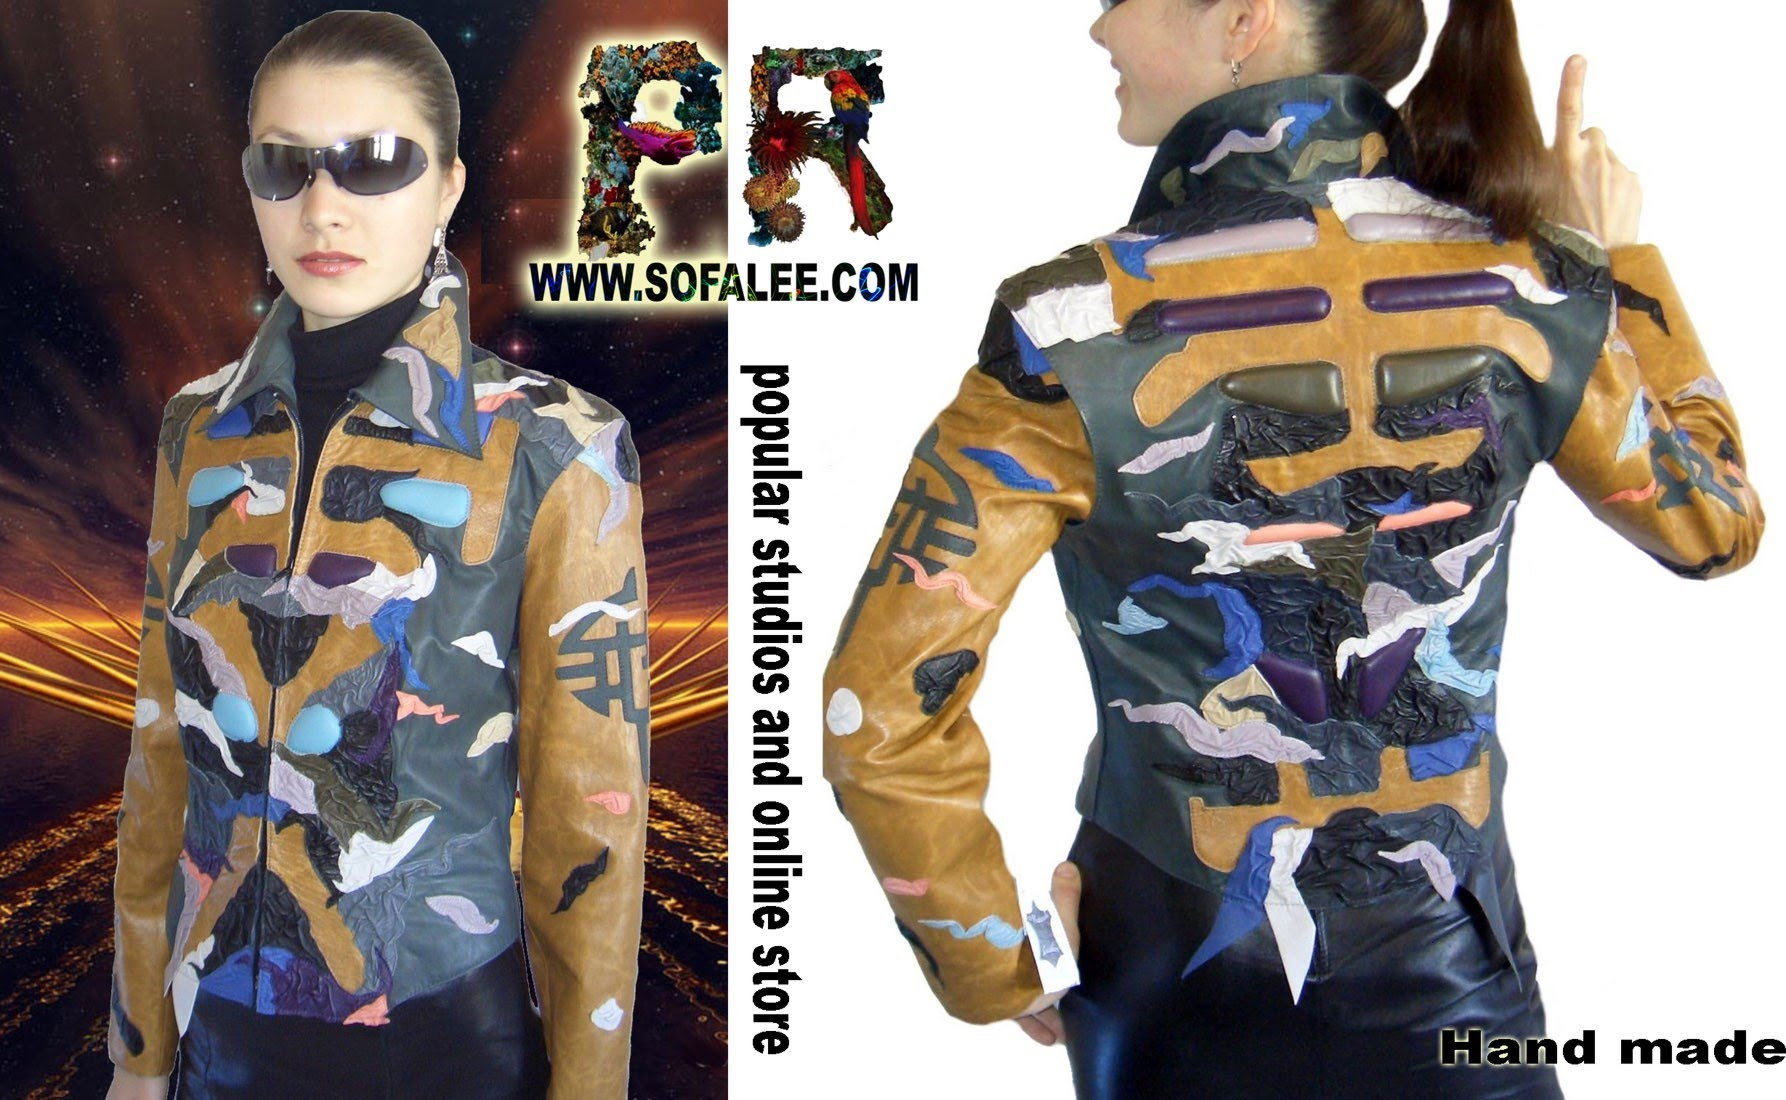 https://sites.google.com/a/sofalee.com/handmade-leather-jacets/jackets-collection/Online-store%20leather%20clothing%205.jpg?attredirects=0